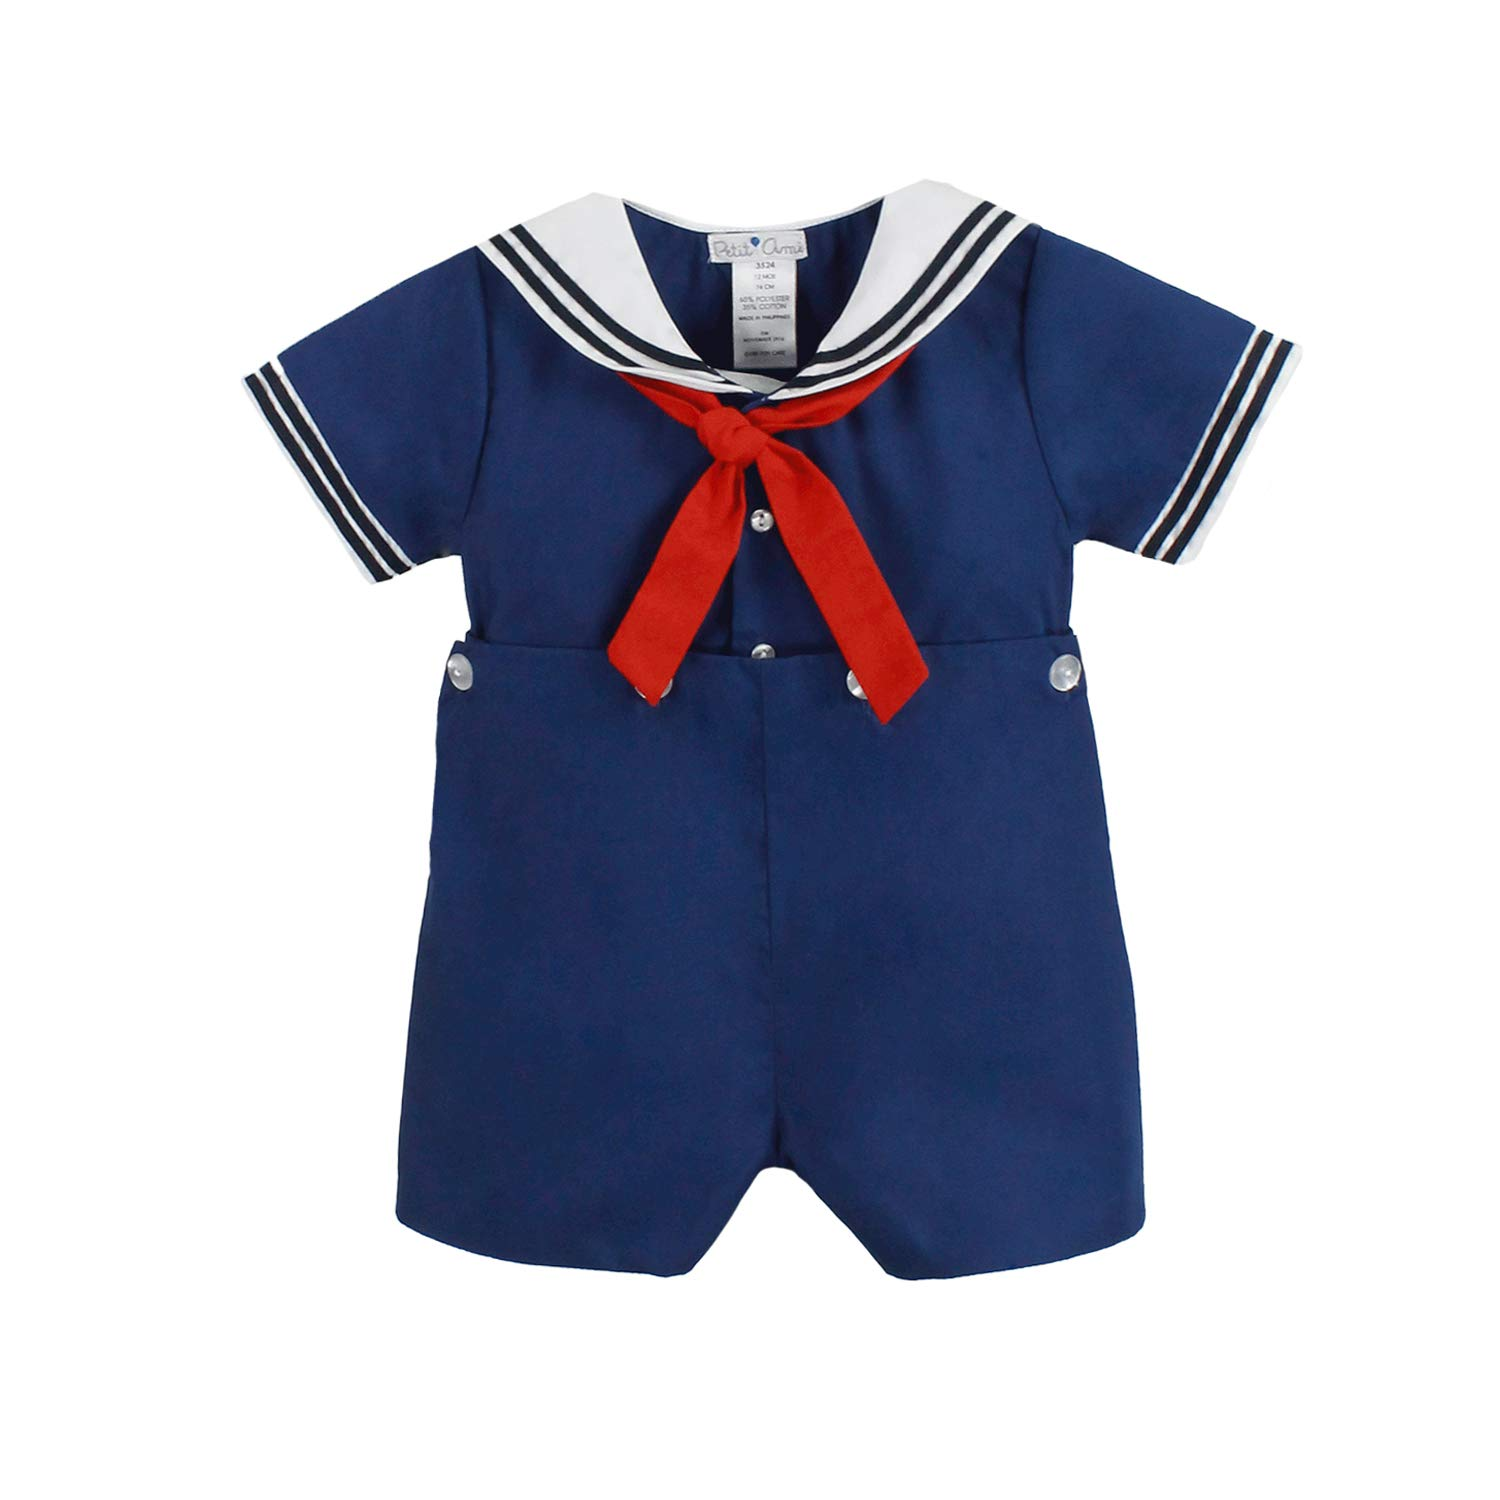 Petit Ami Baby Boys' 2 Piece Nautical Bobby Suit with Collar